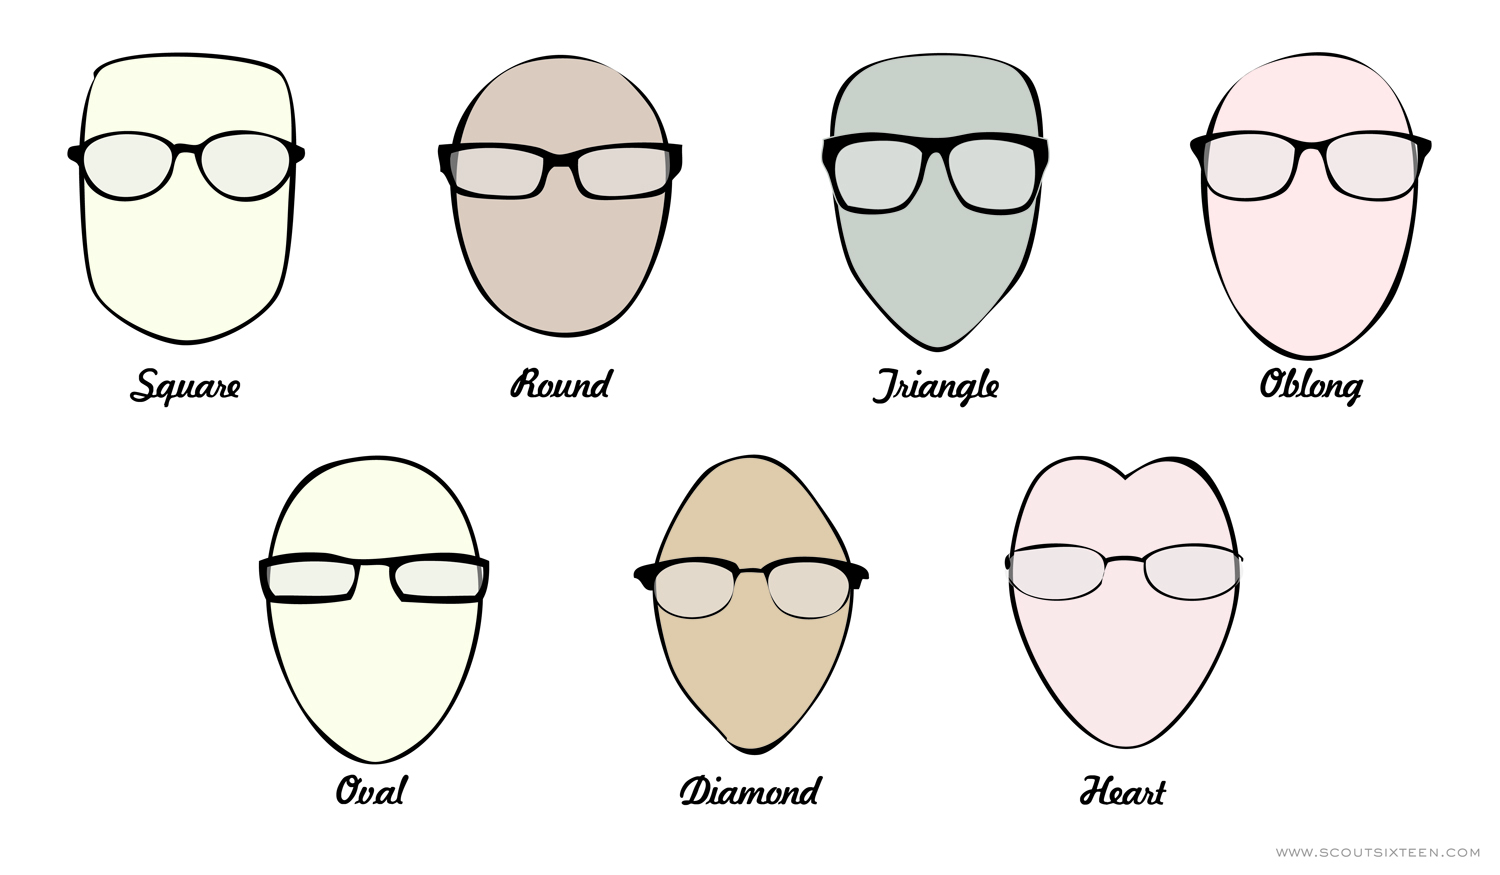 Best Glasses Frame For Face Shape : Best Glasses Frames for Face Shape